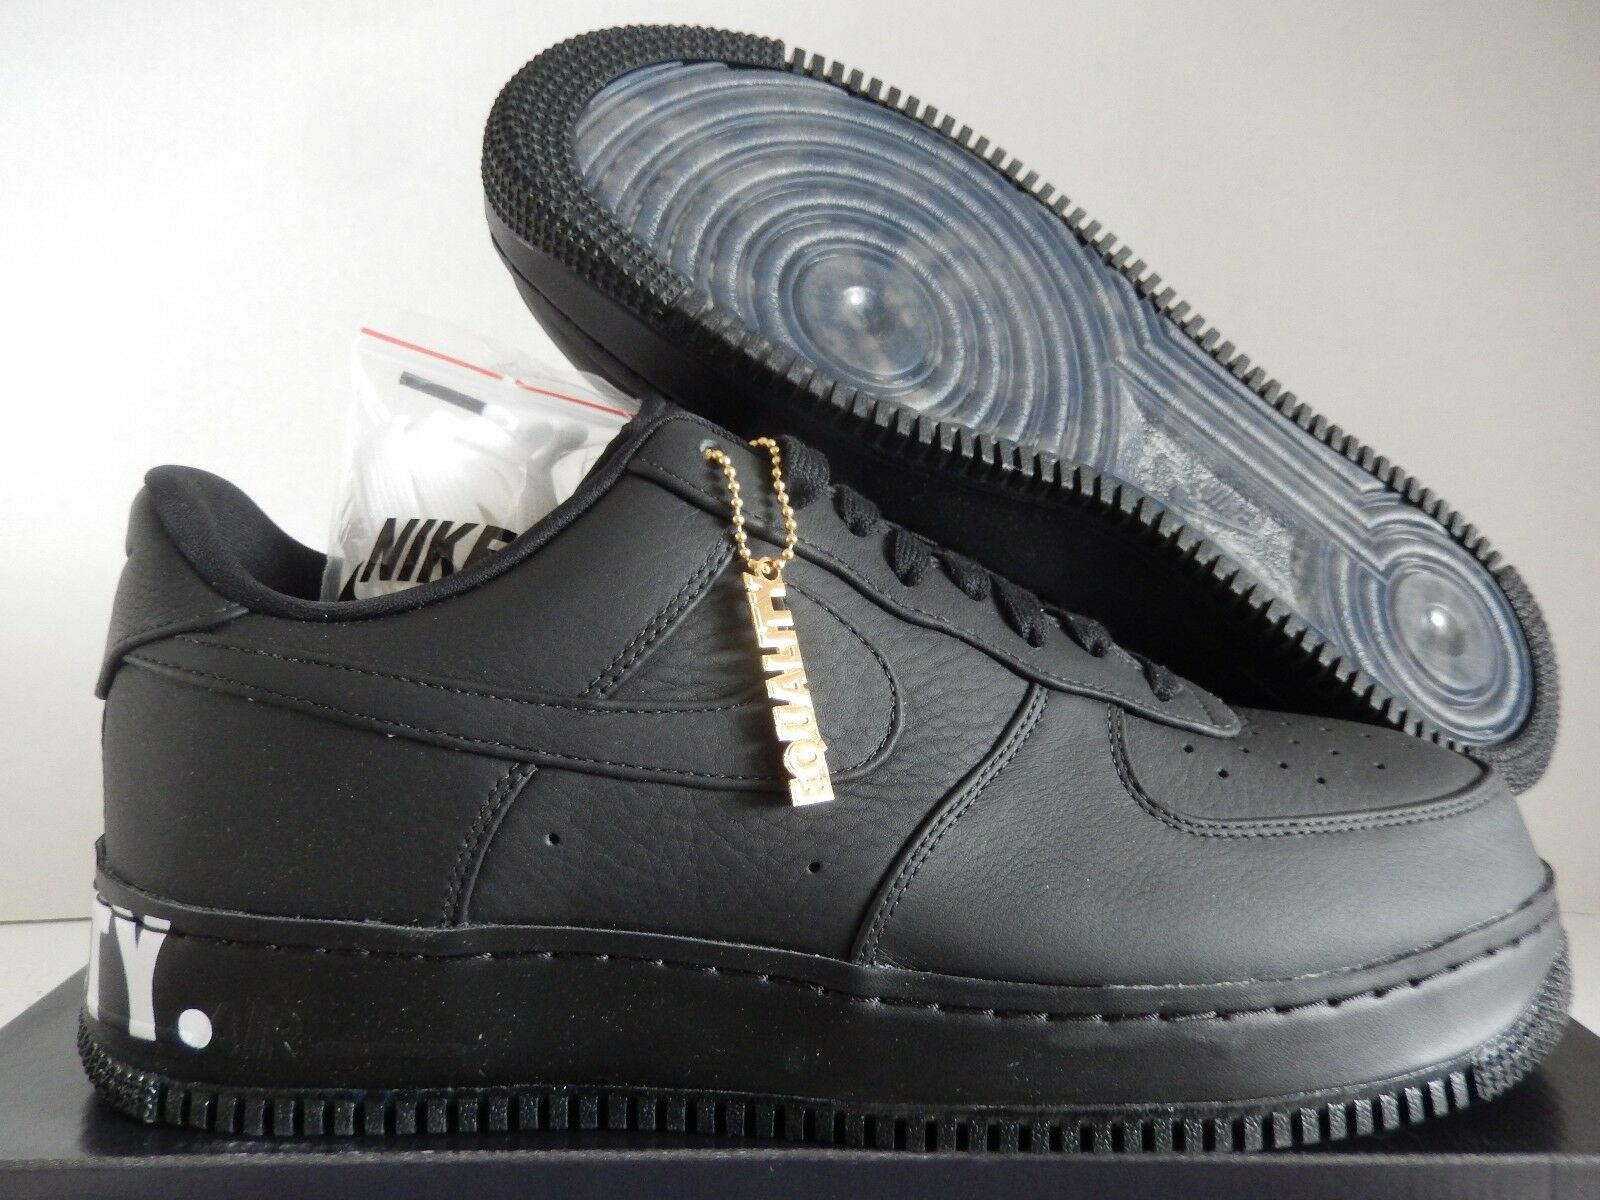 NIKE AIR FORCE 1 CMFT EQUALITY QS BLACK-BLACK-WHITE-GOLD SZ 12 [AQ2125-001]